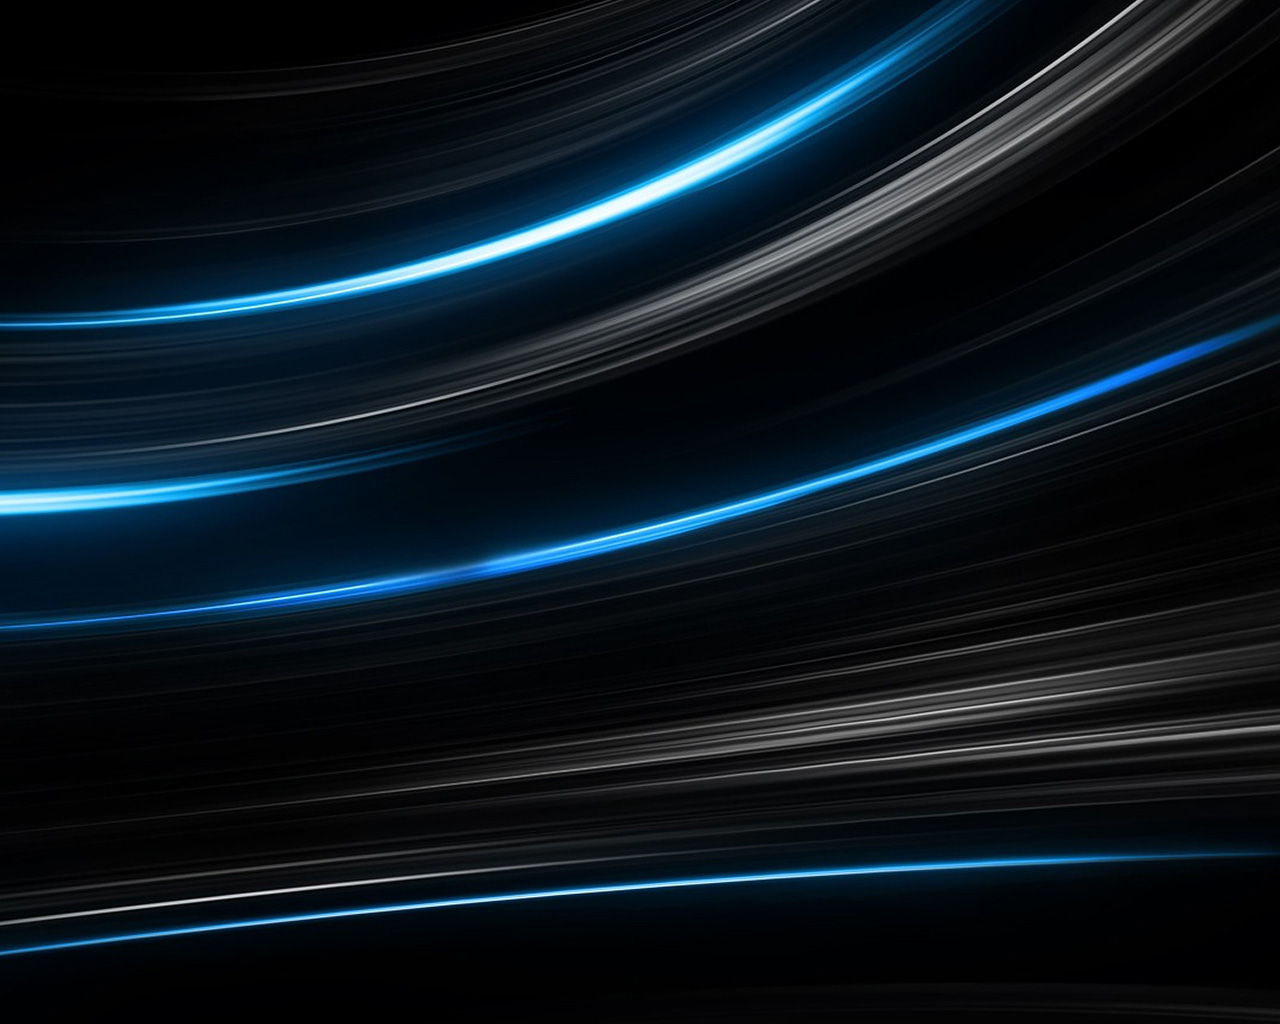 wallpaper for desktop, laptop | vo28-curve-abstract-line ...